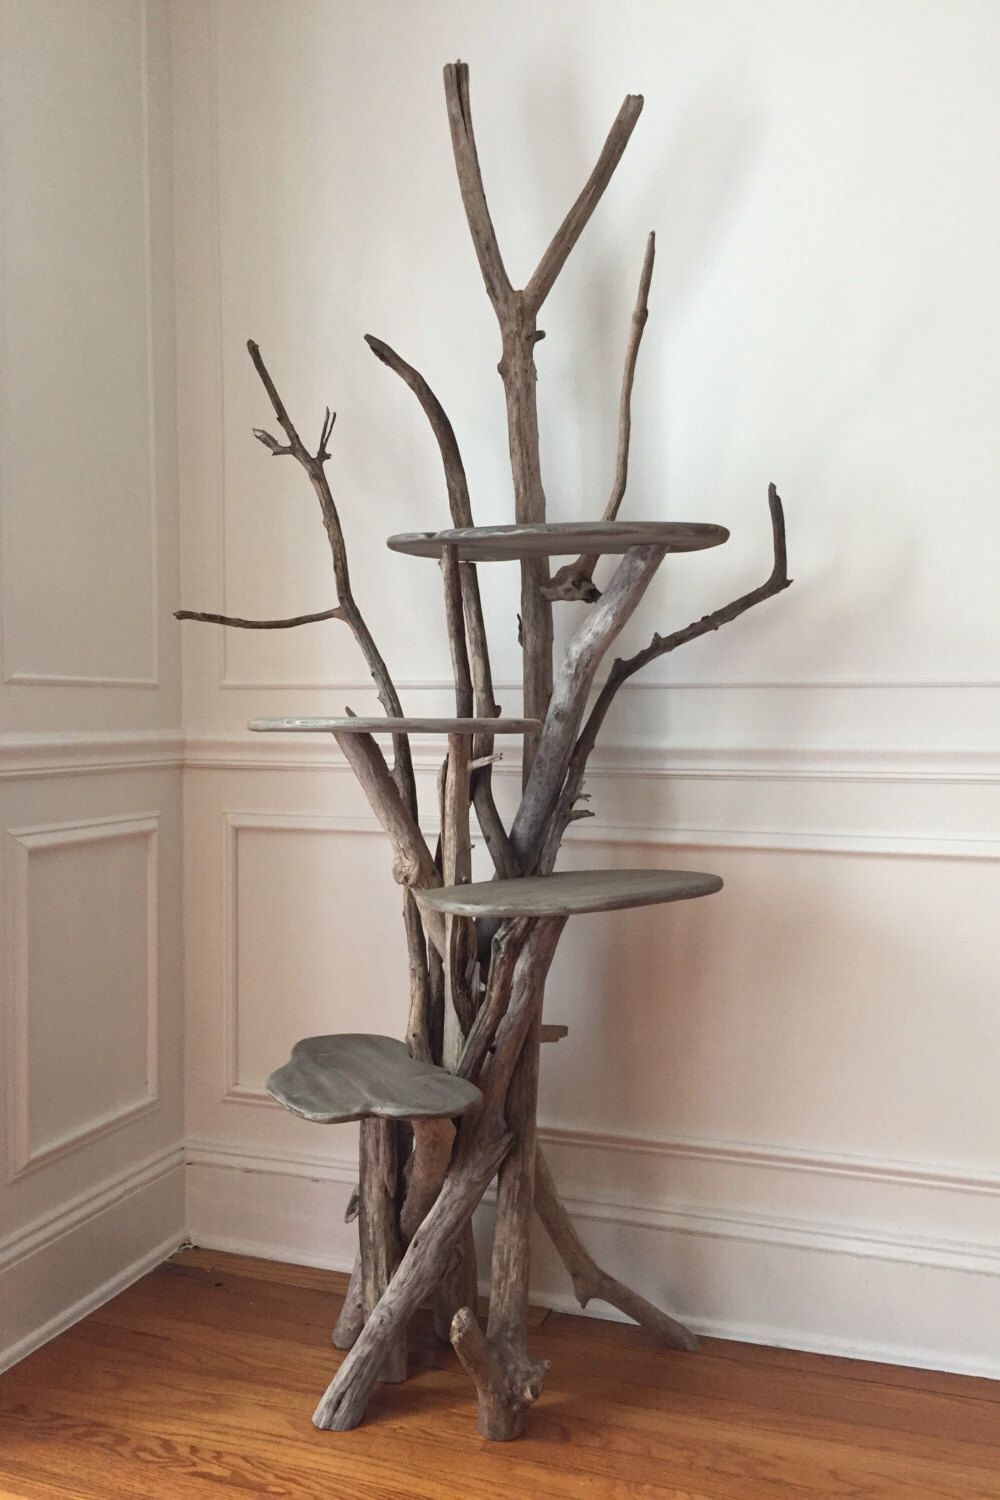 Arbre A Chat En Bois Fait Maison large driftwood cat climbing tree. handmade from reclaimed